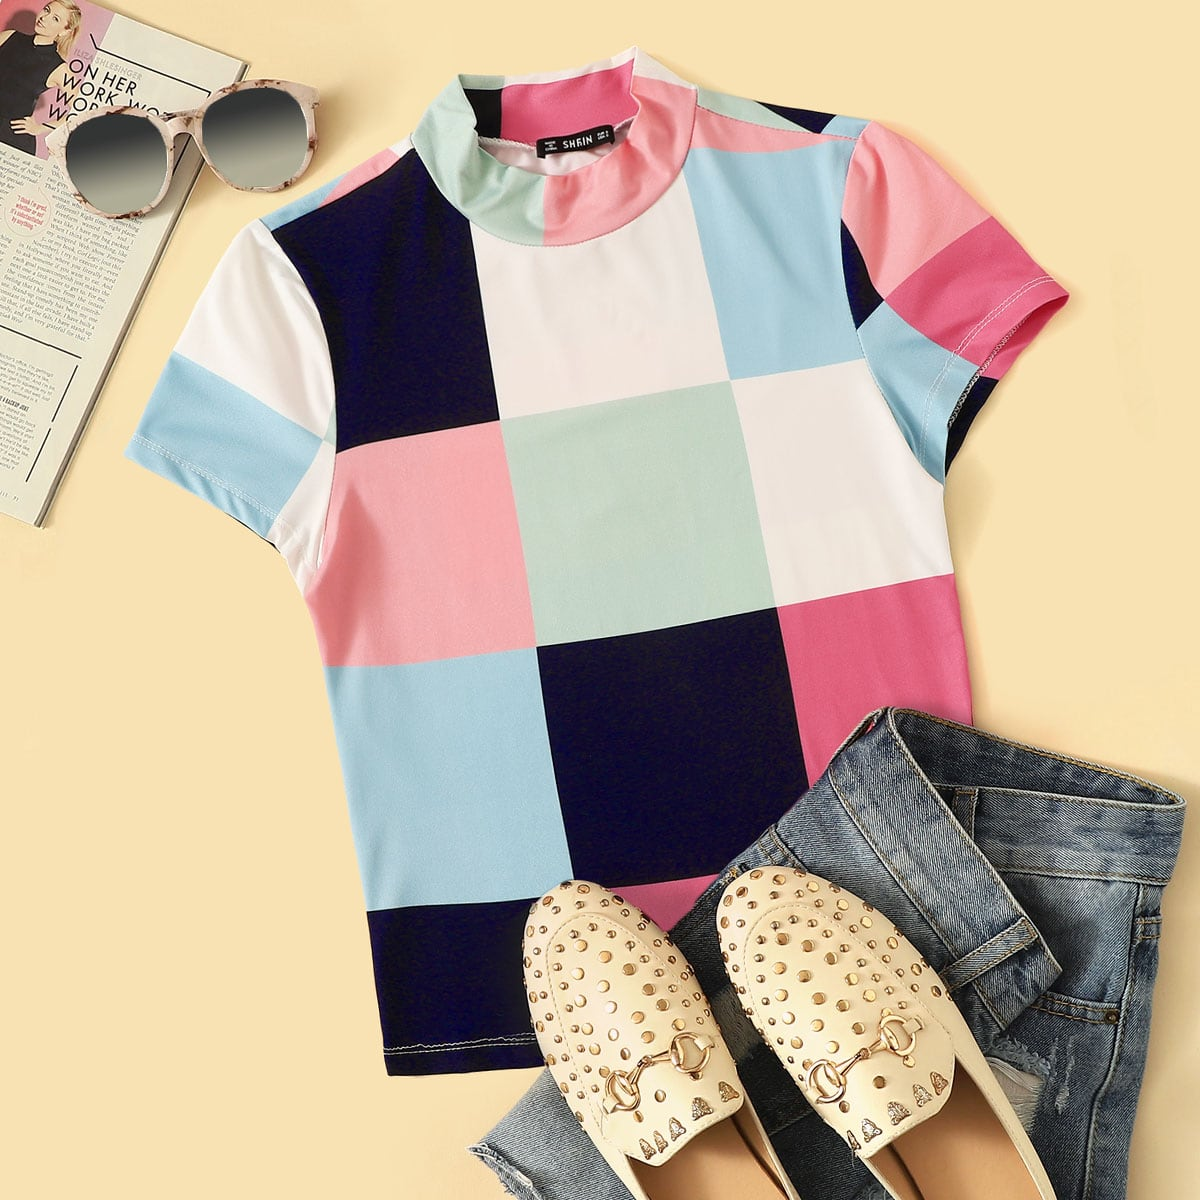 SHEIN coupon: Mock-neck Patchwork Tee